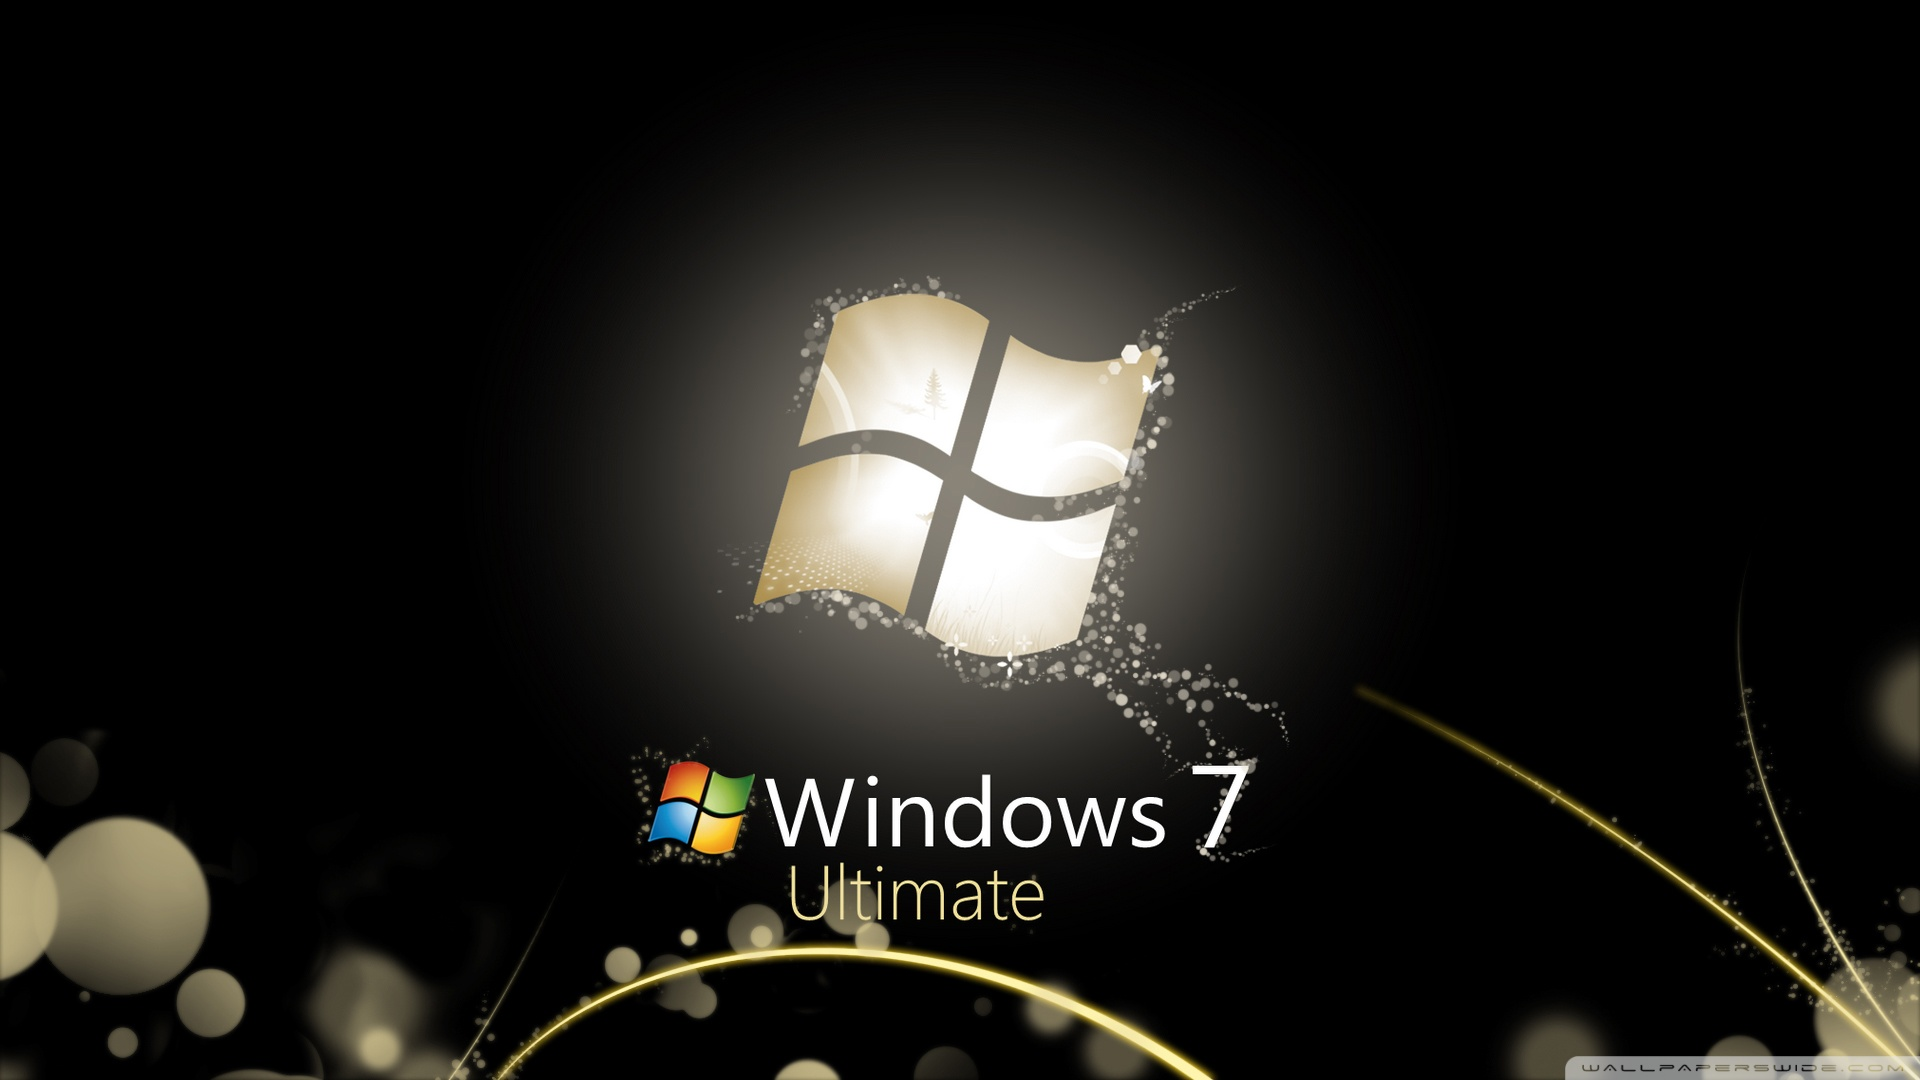 Full HD Wallpapers For Windows 7